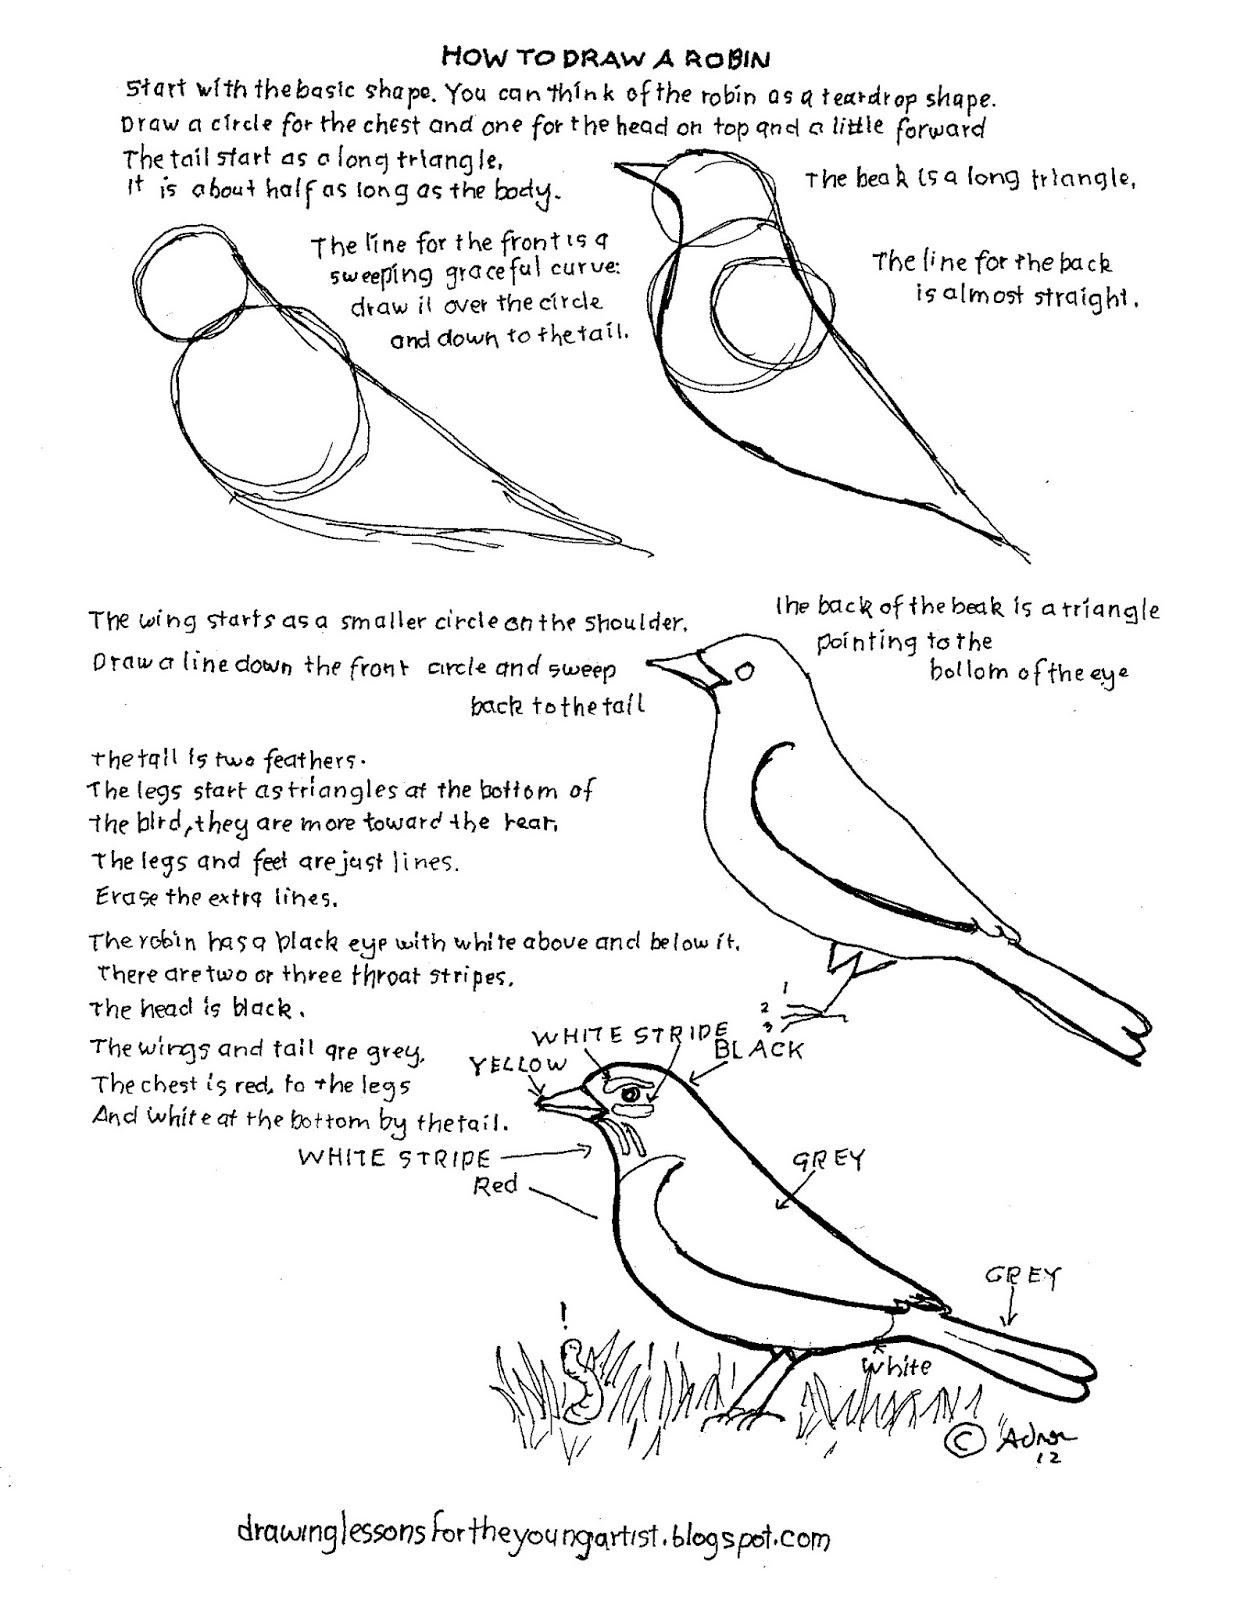 worksheet Drawing Worksheets how to draw worksheets for the young artist a robin printable worksheet